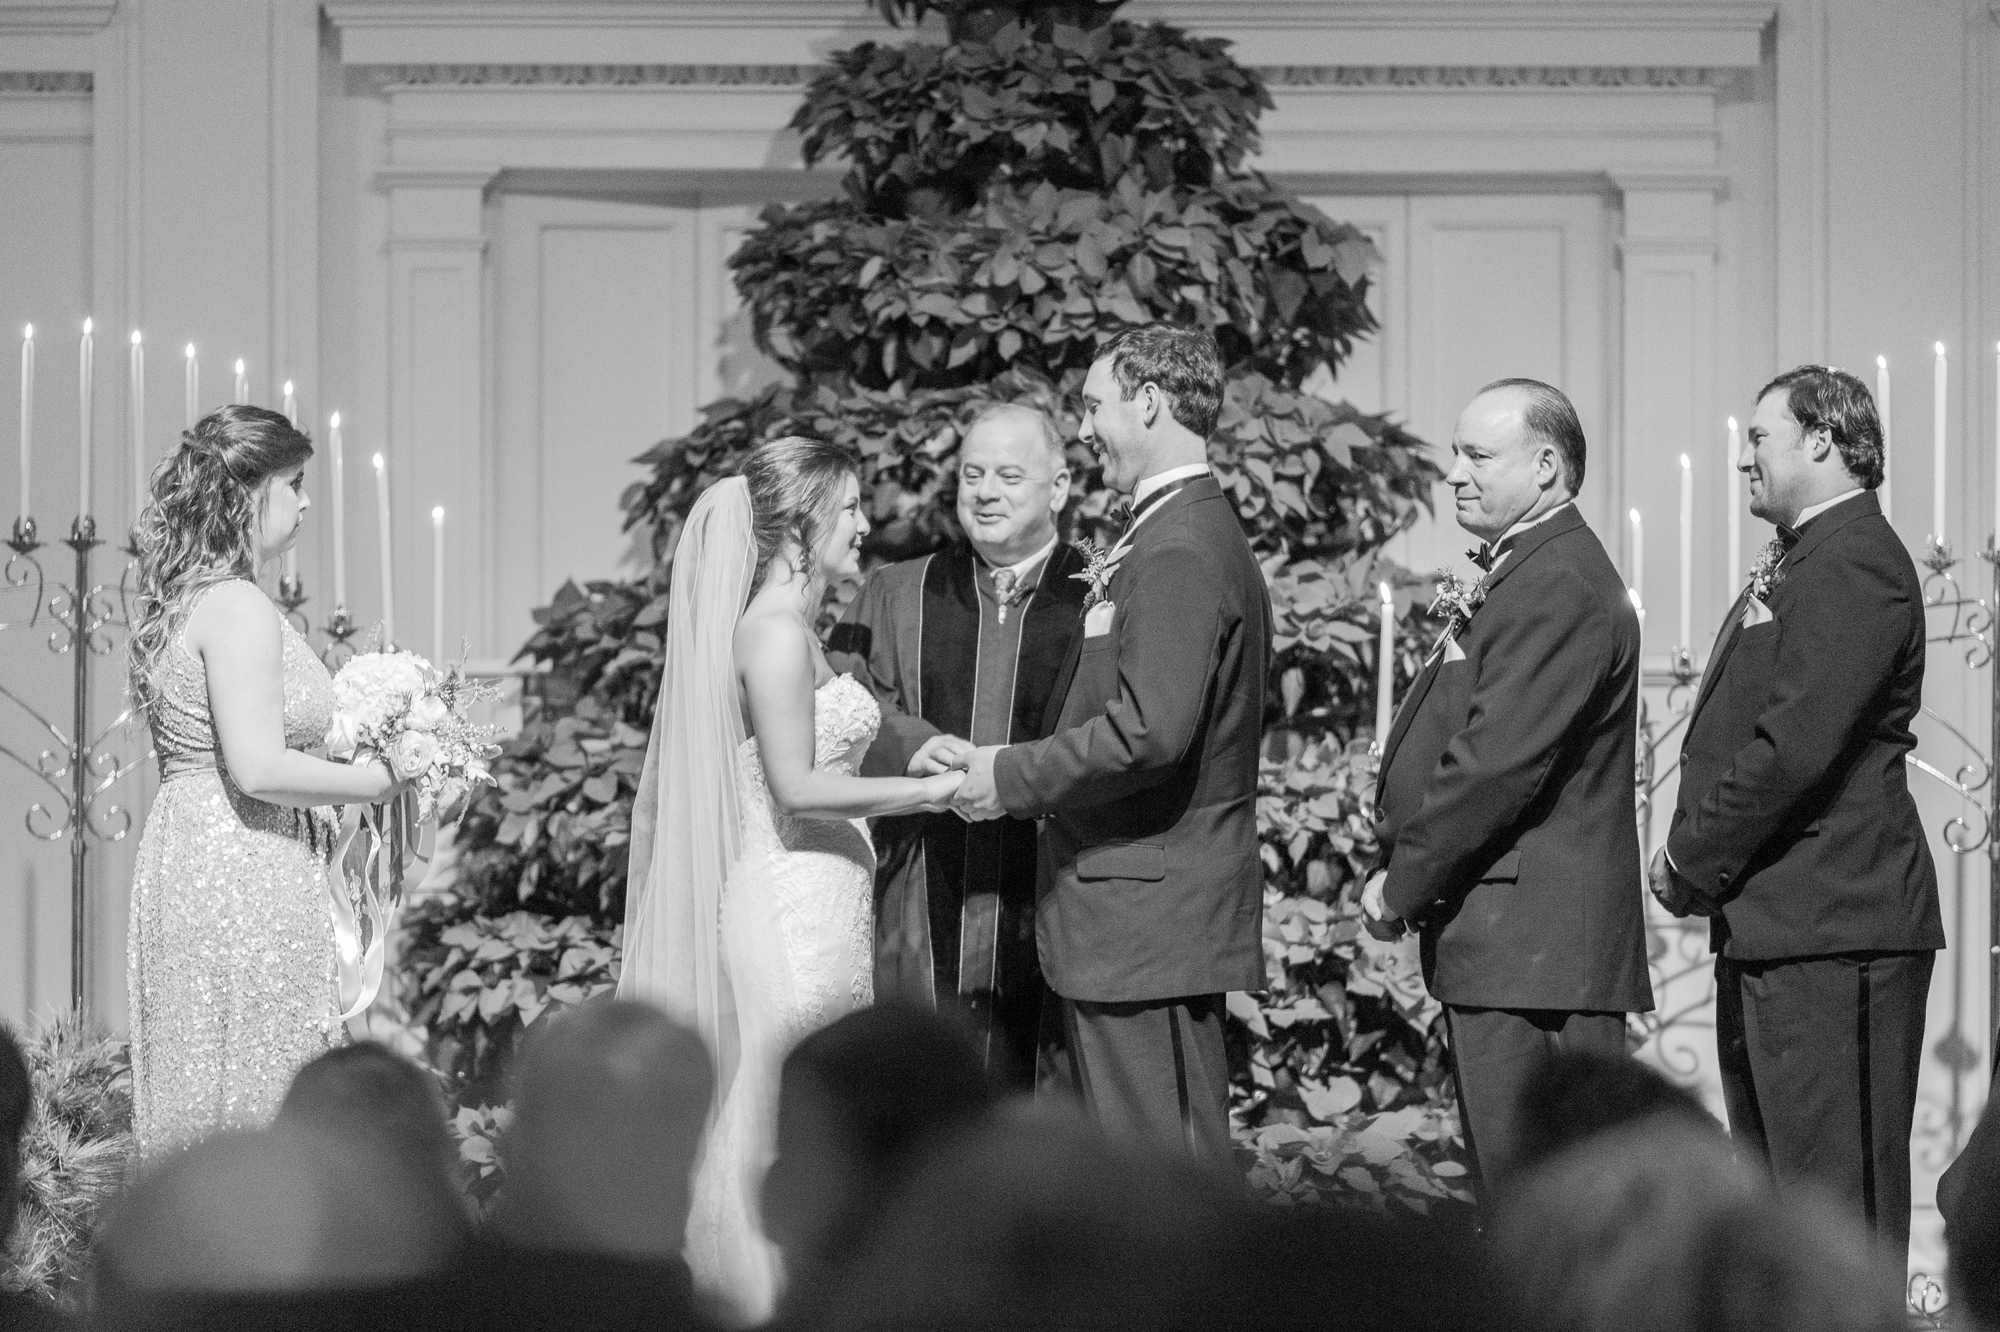 brozovich wedding 62.jpg